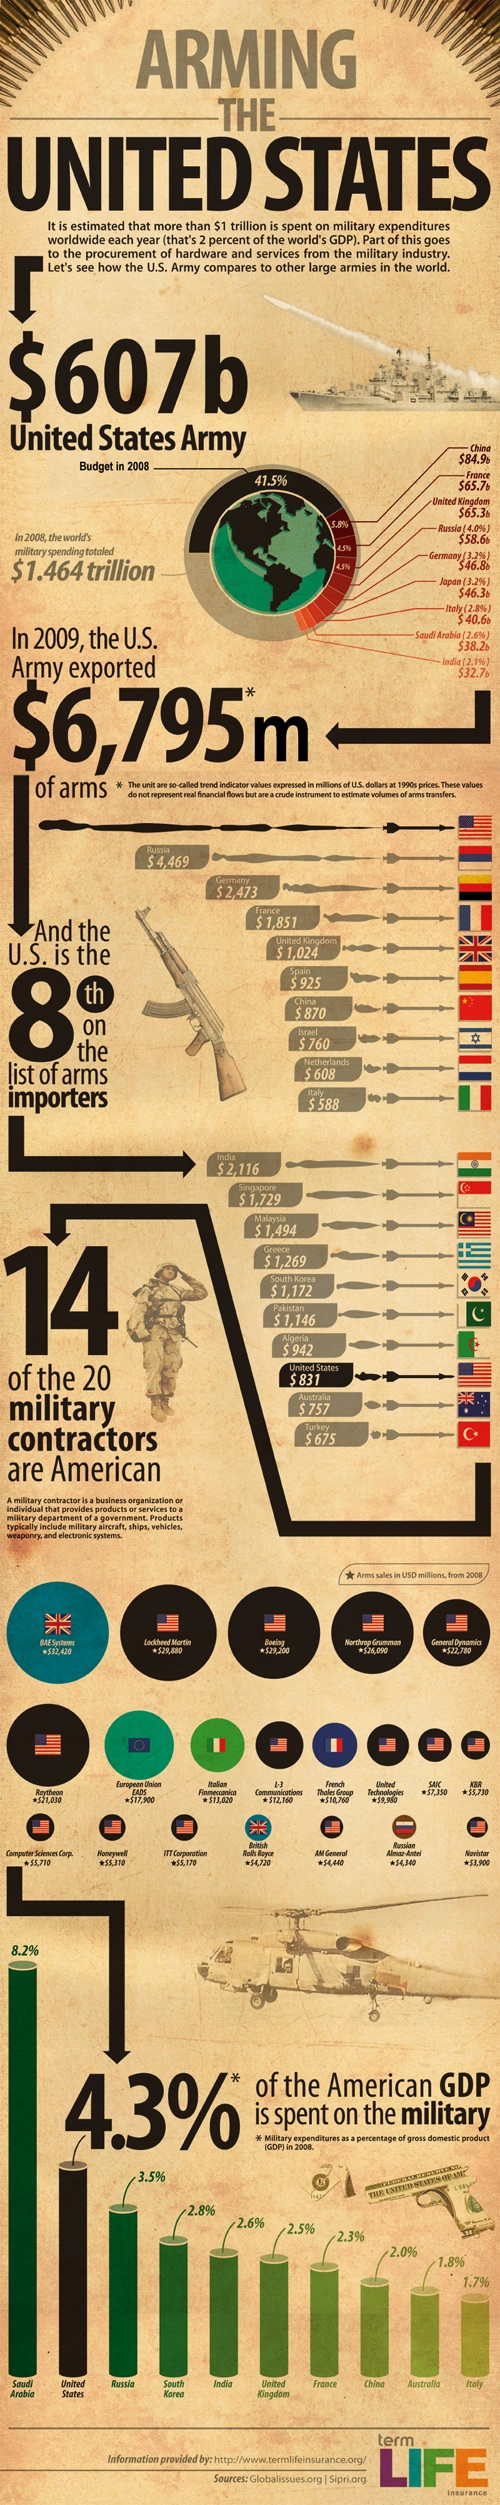 National Defense Spending and Contractor Statistics